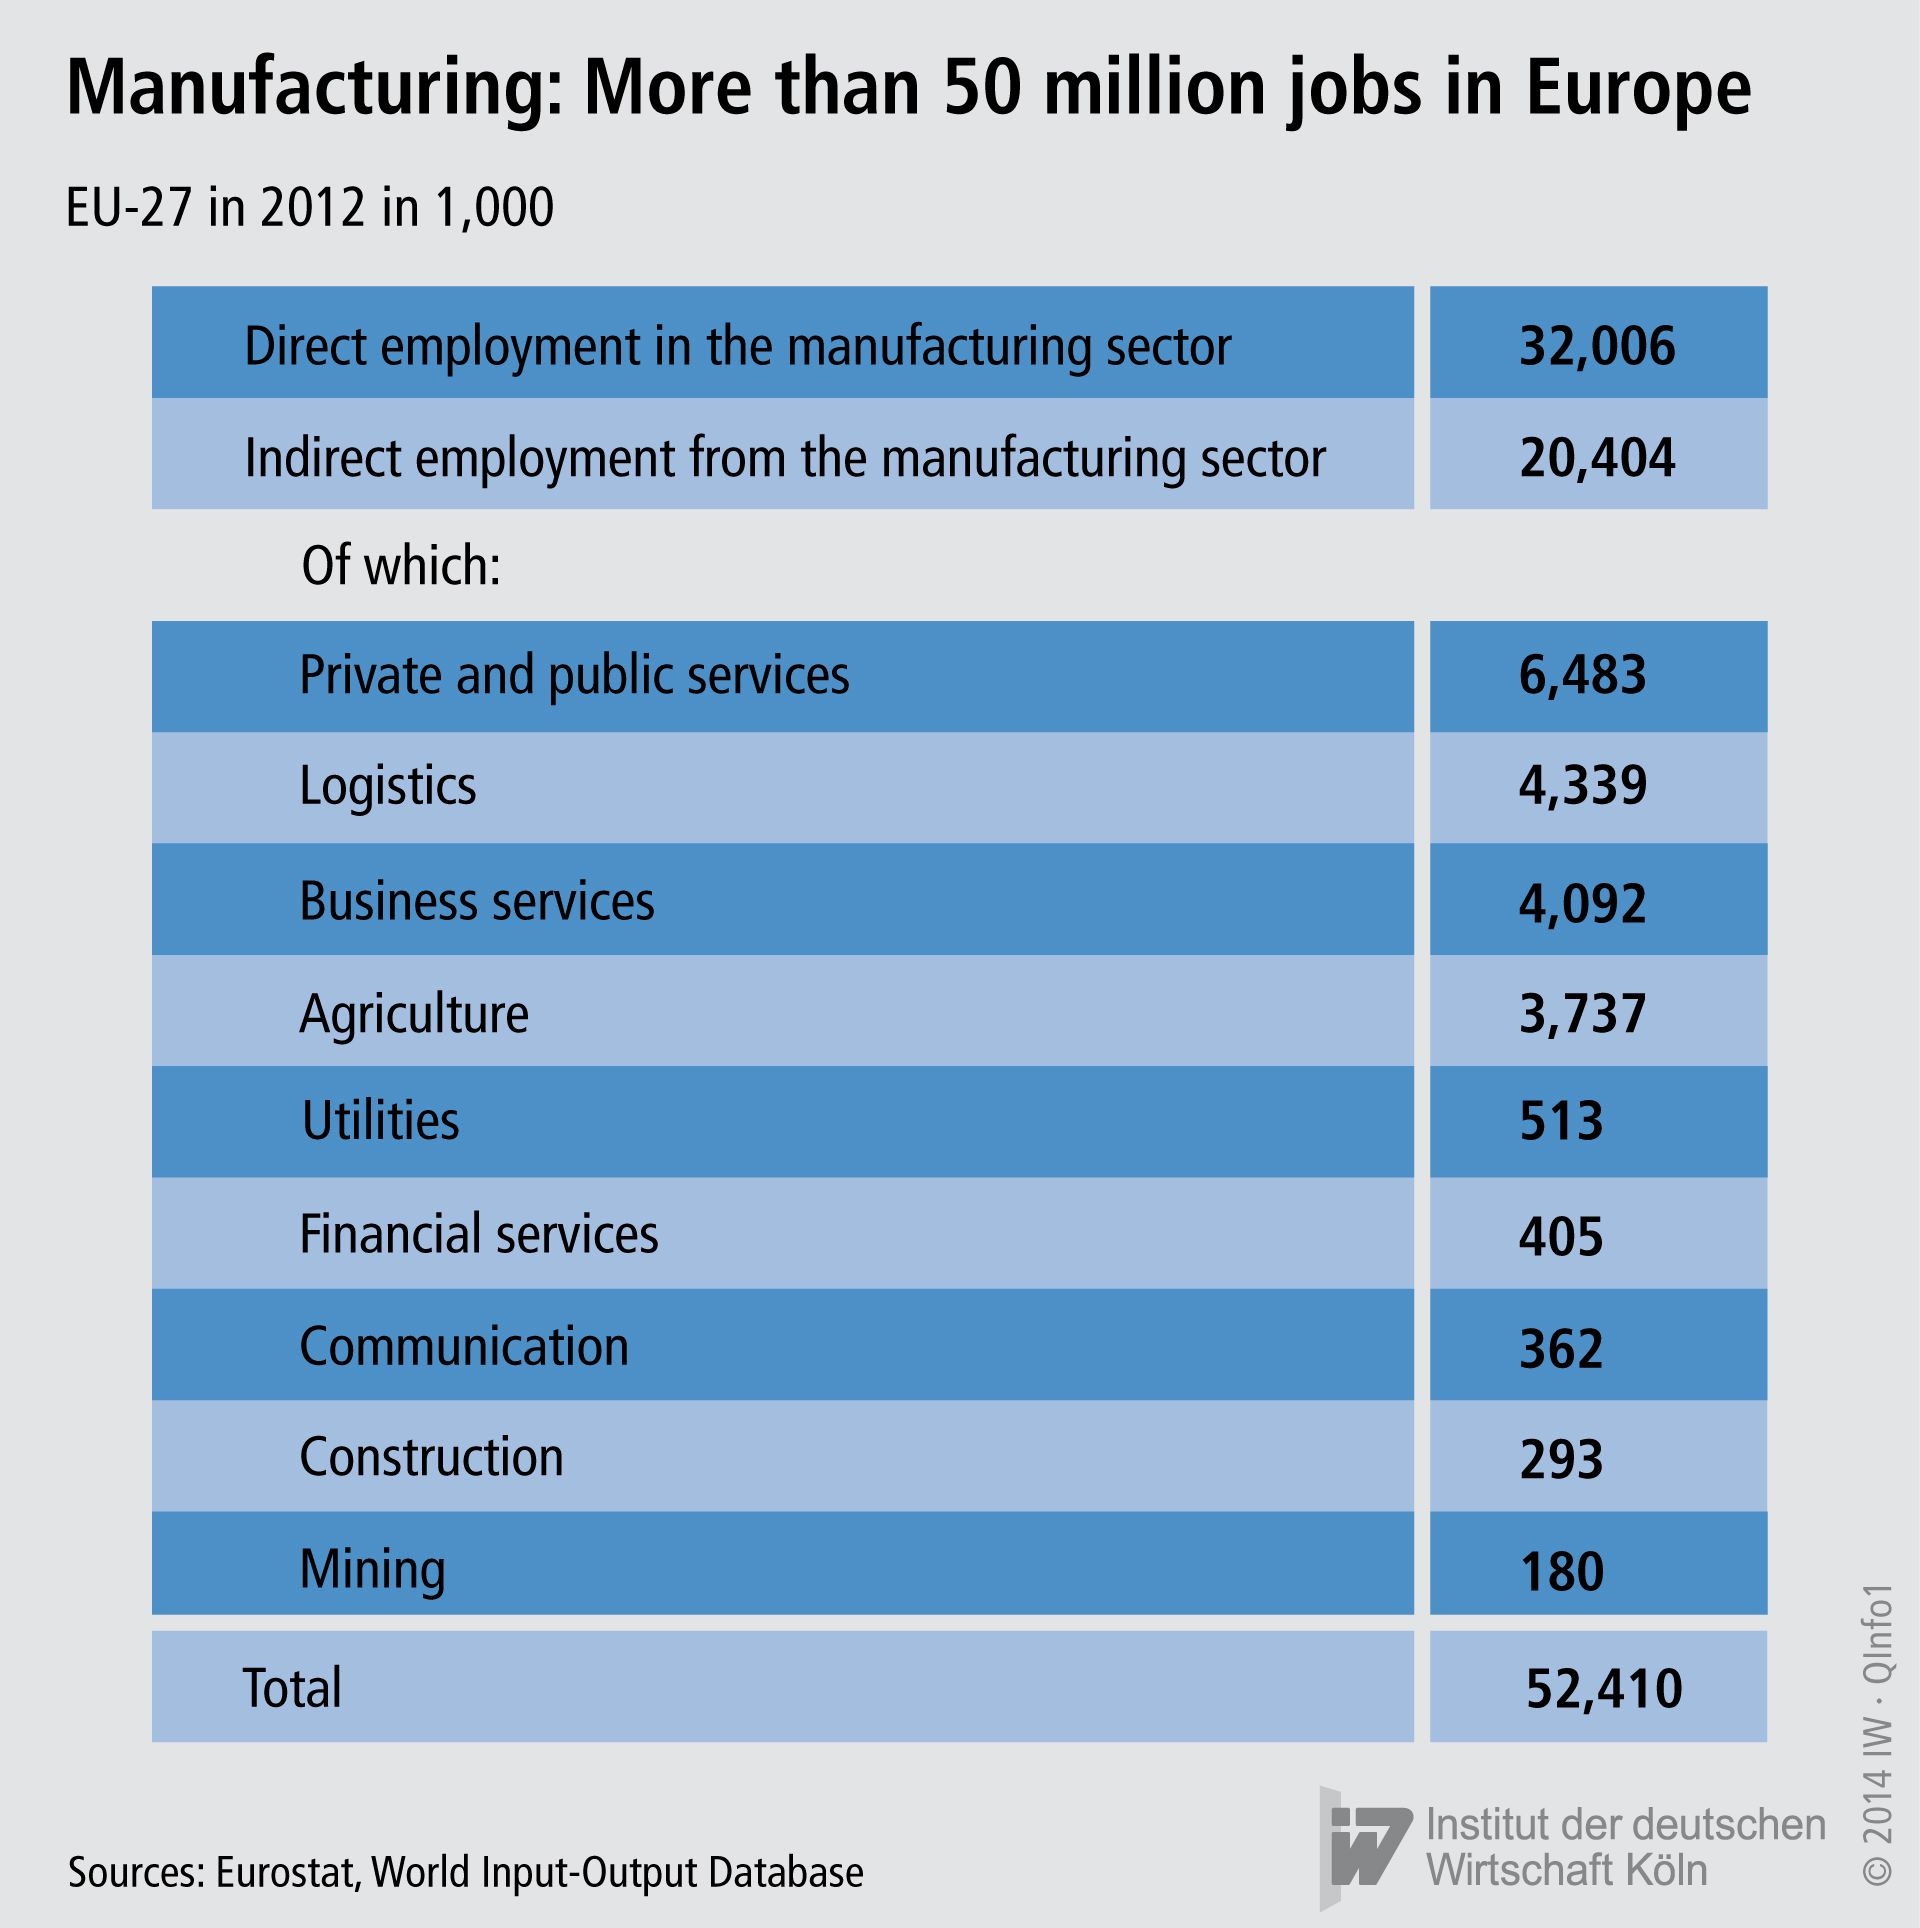 Manufacturing jobs in Europe